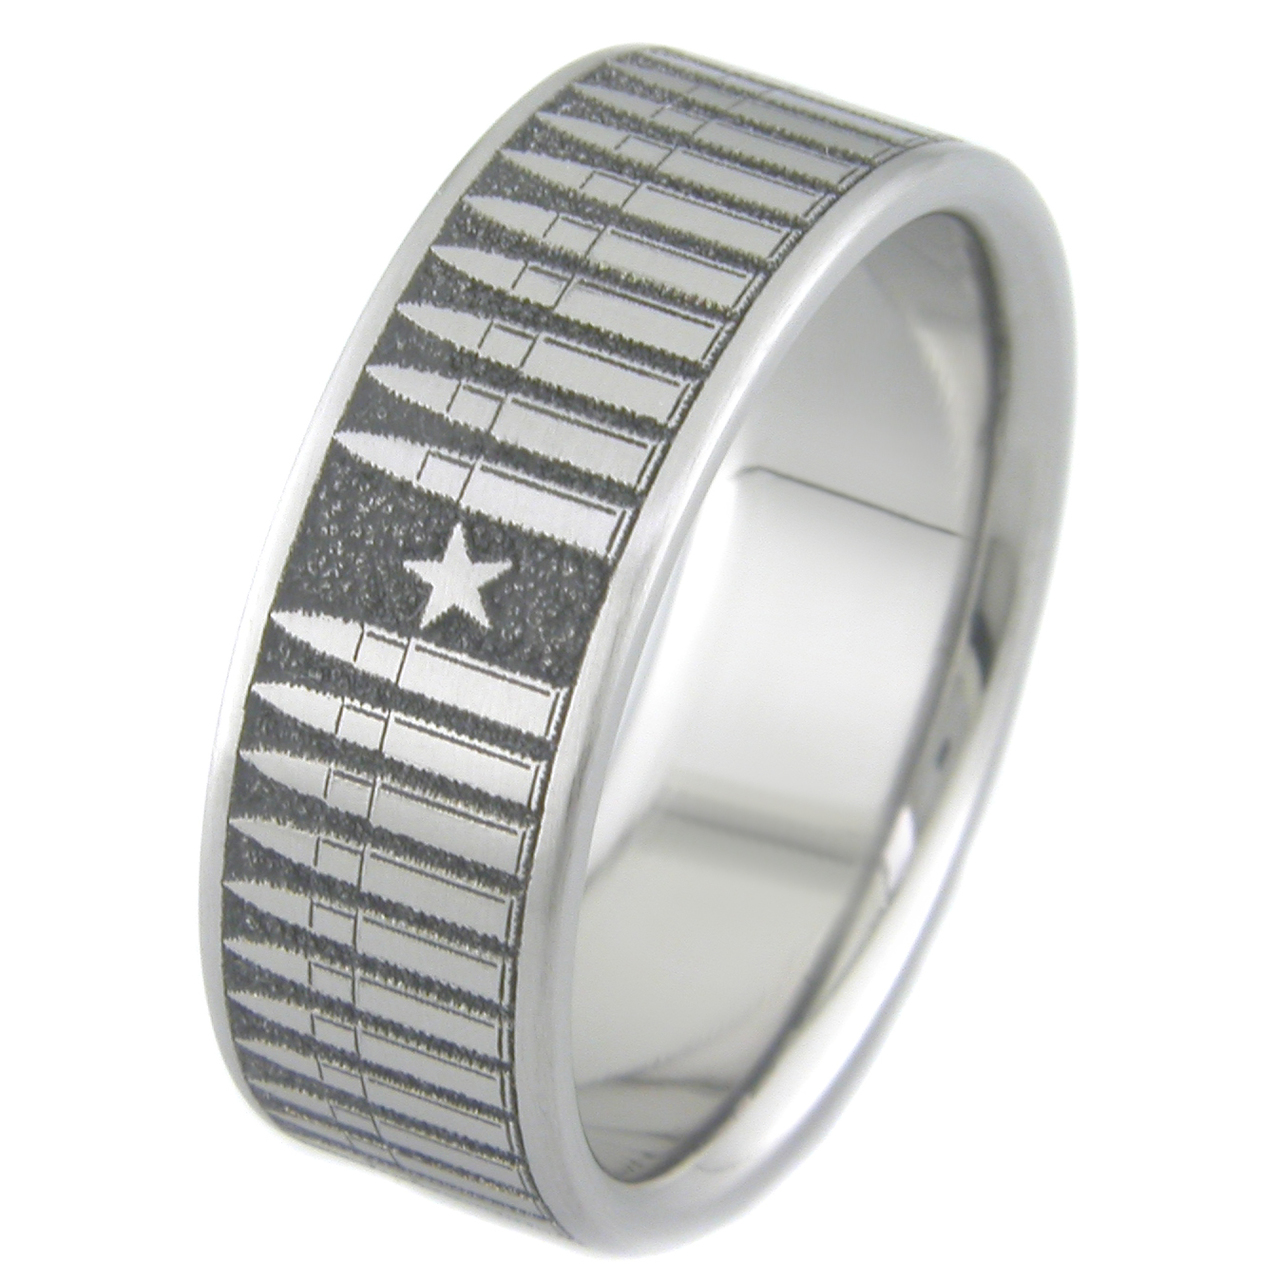 The Bullet Wedding Band